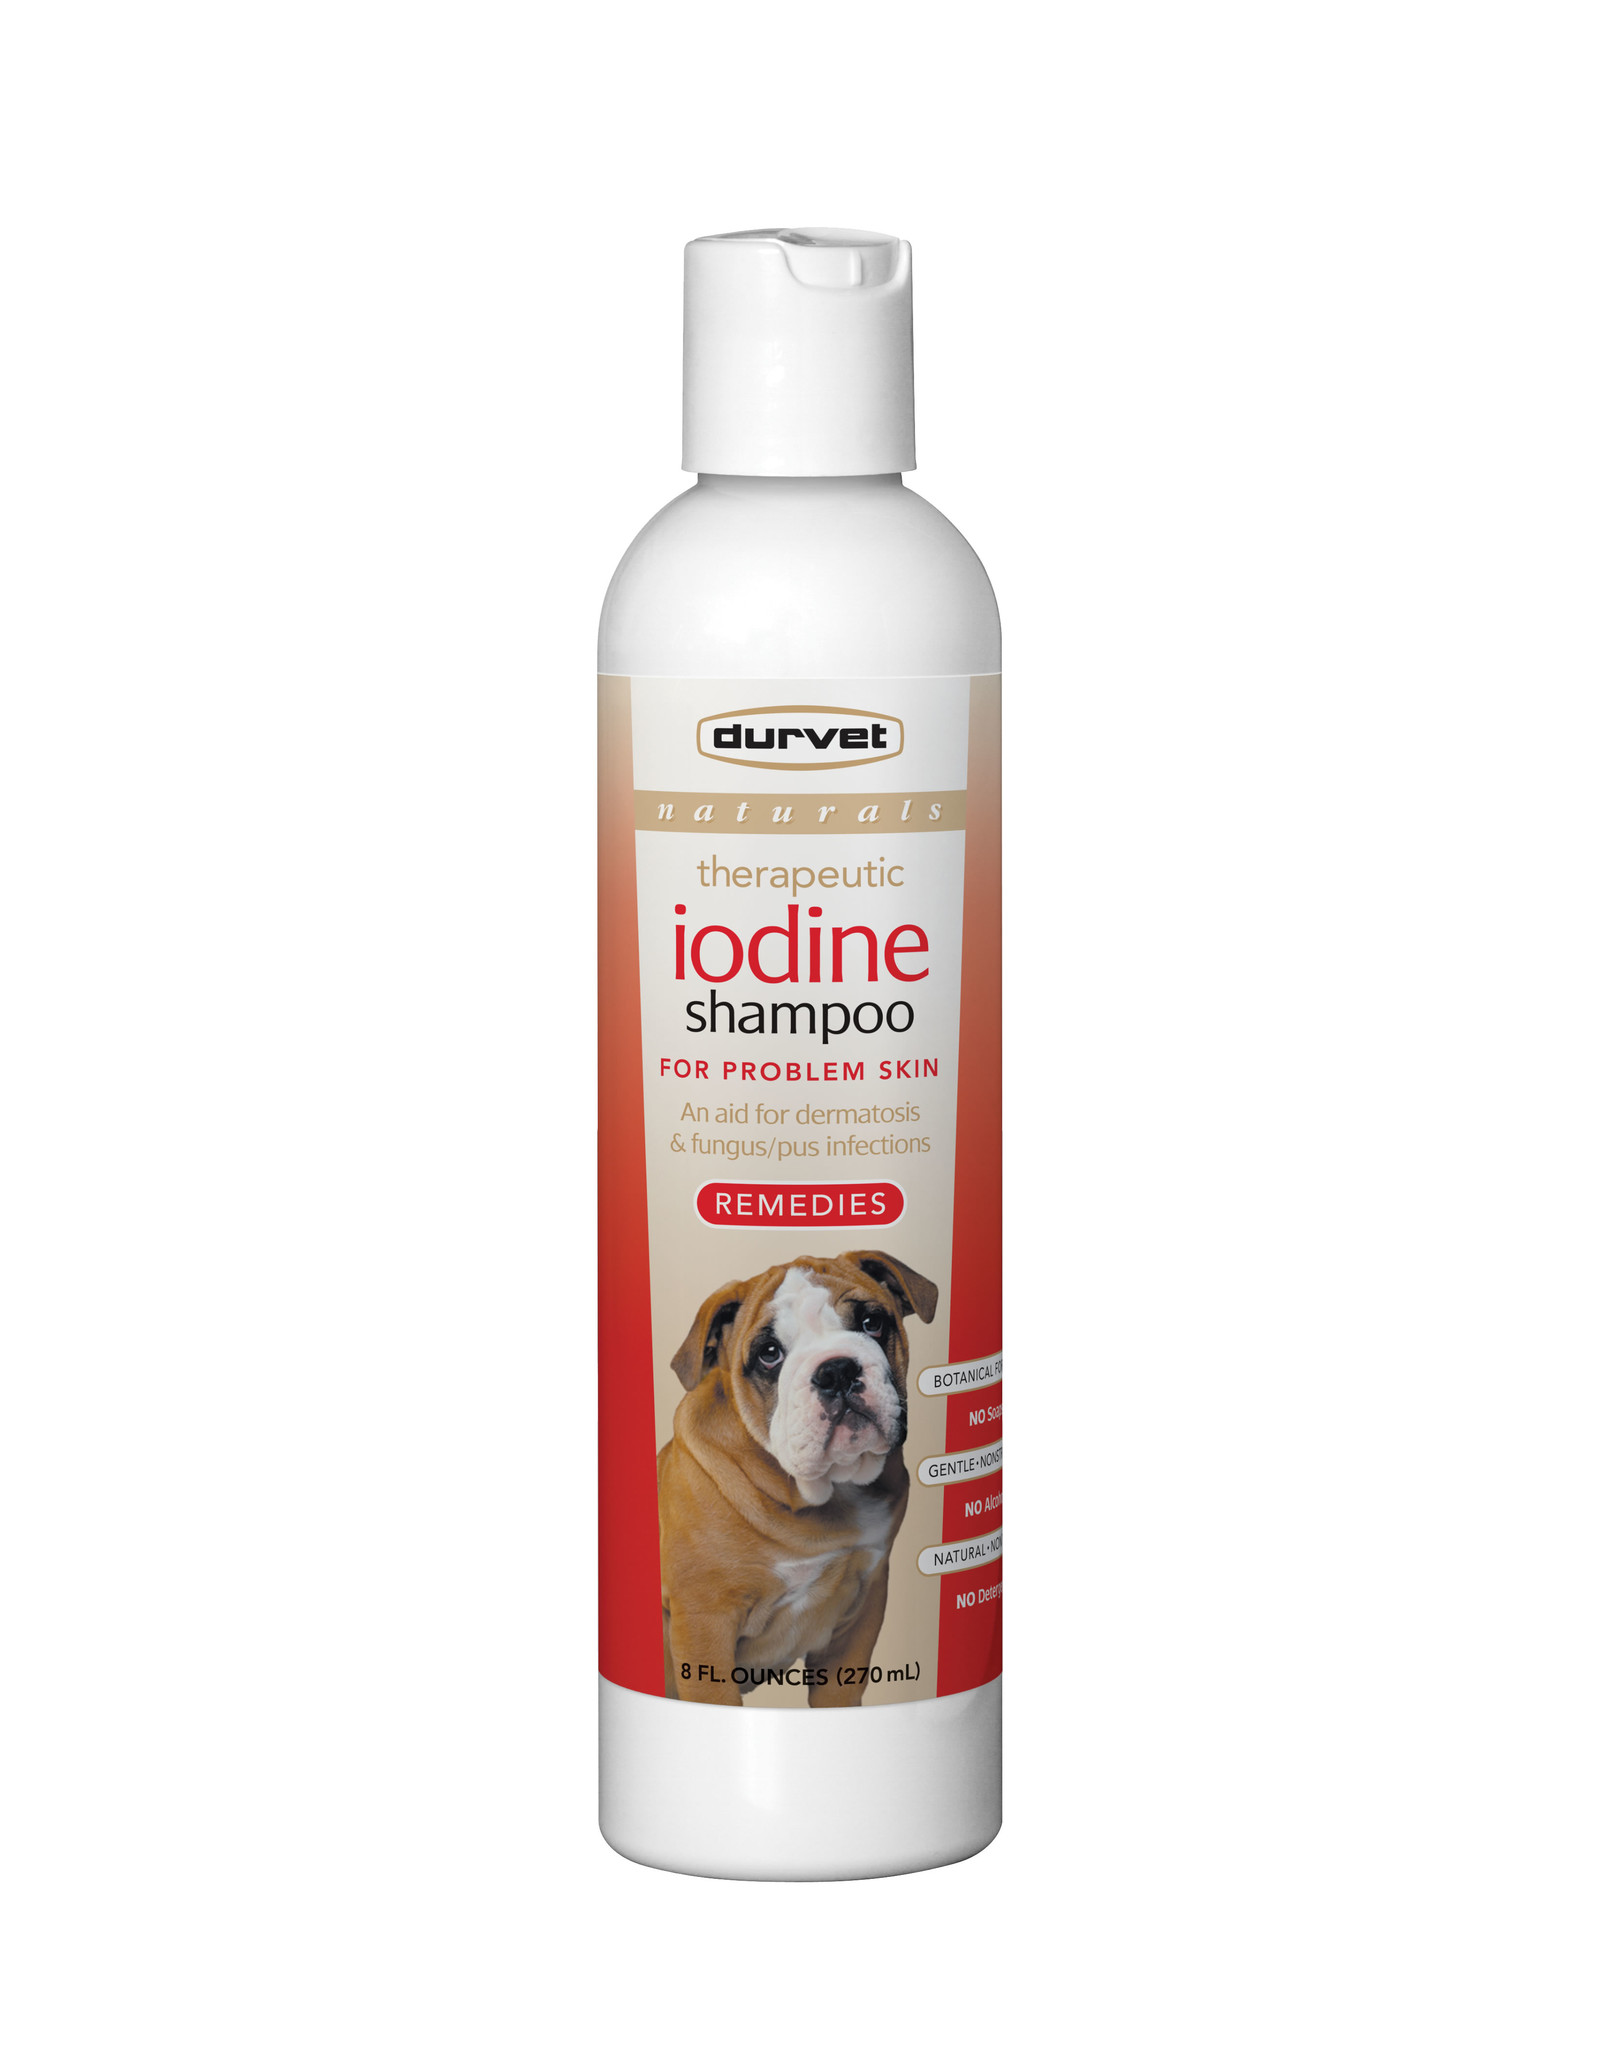 Durvet Durvet Naturals Remedies Iodine Dog Shampoo 8oz